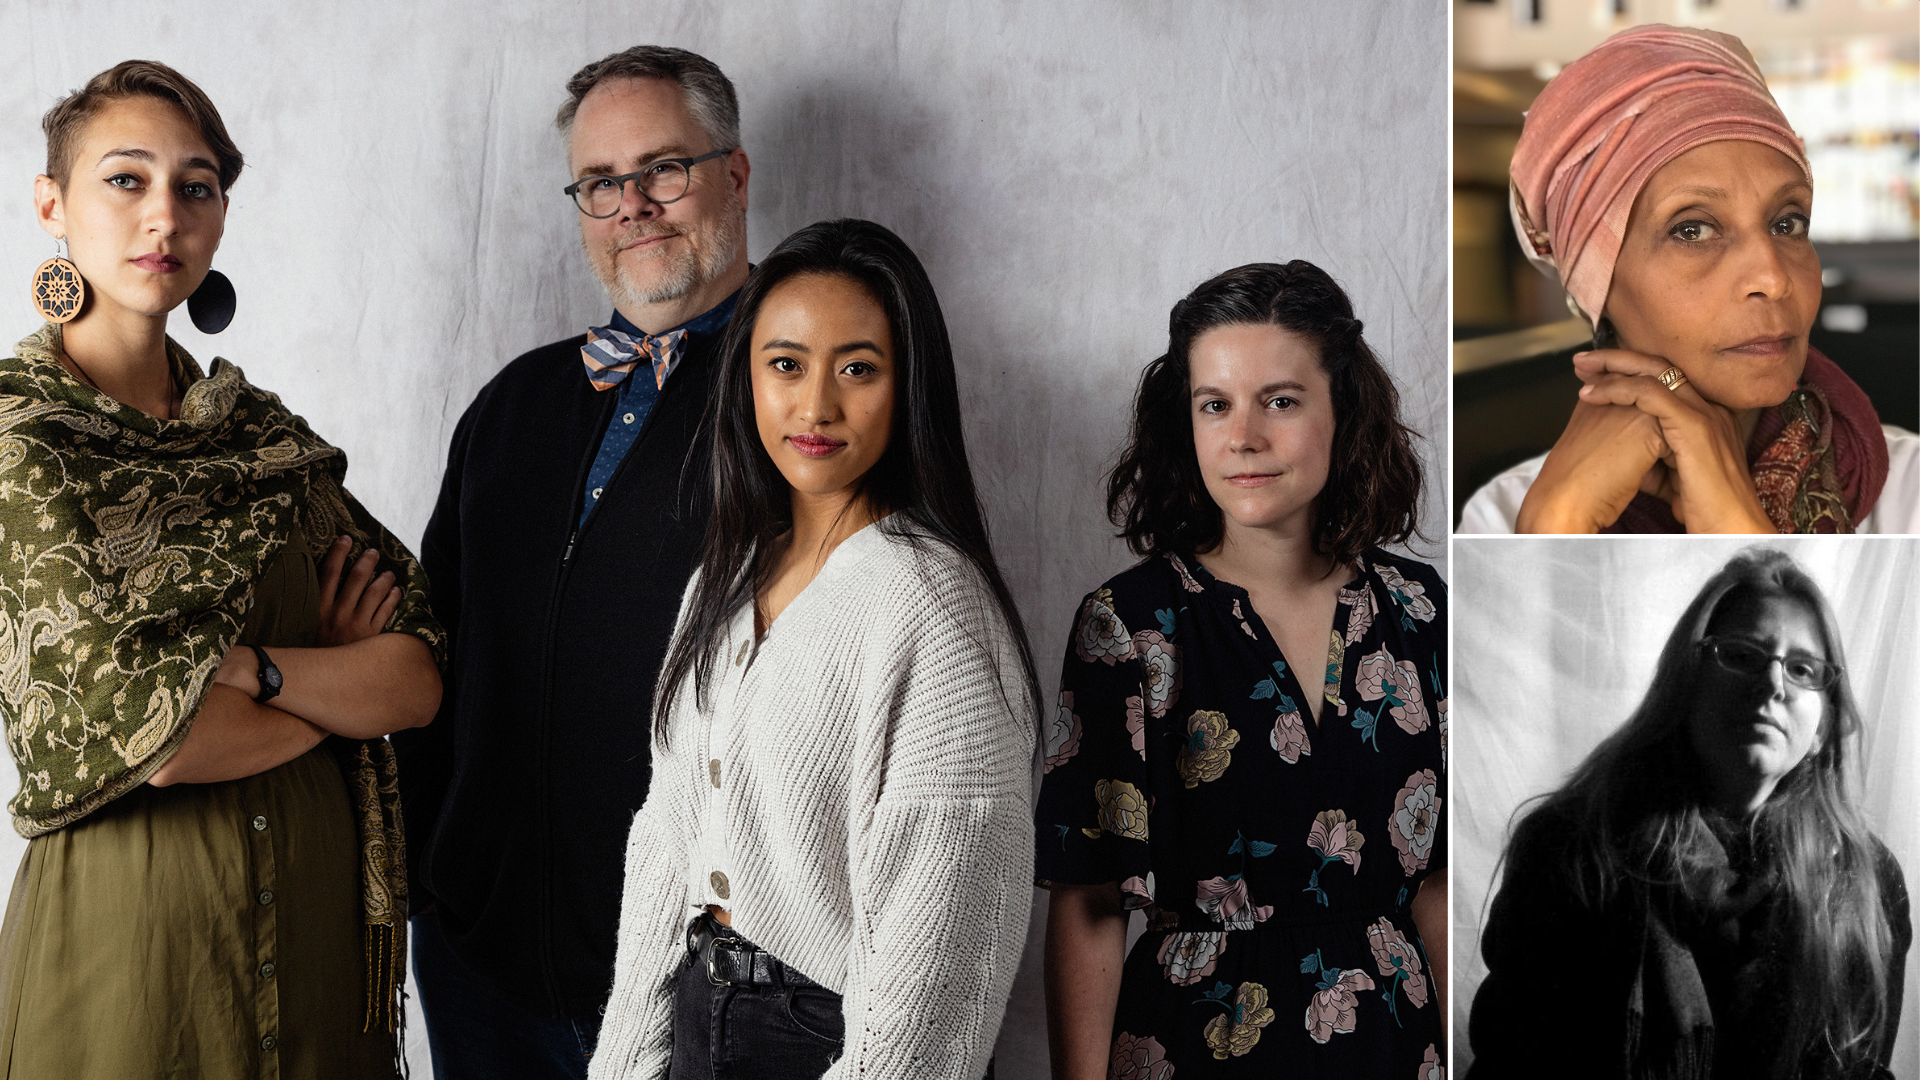 Left | Nabra Nelson, Tom Smith, Rheanna Atendido & Danielle Mohlman |  Photo by Brett Love   Top Right | Mona Sherif-Nelson | Photo by Michael Nelson  Bottom Right | Courtney Meaker | Photo by Christina Collins